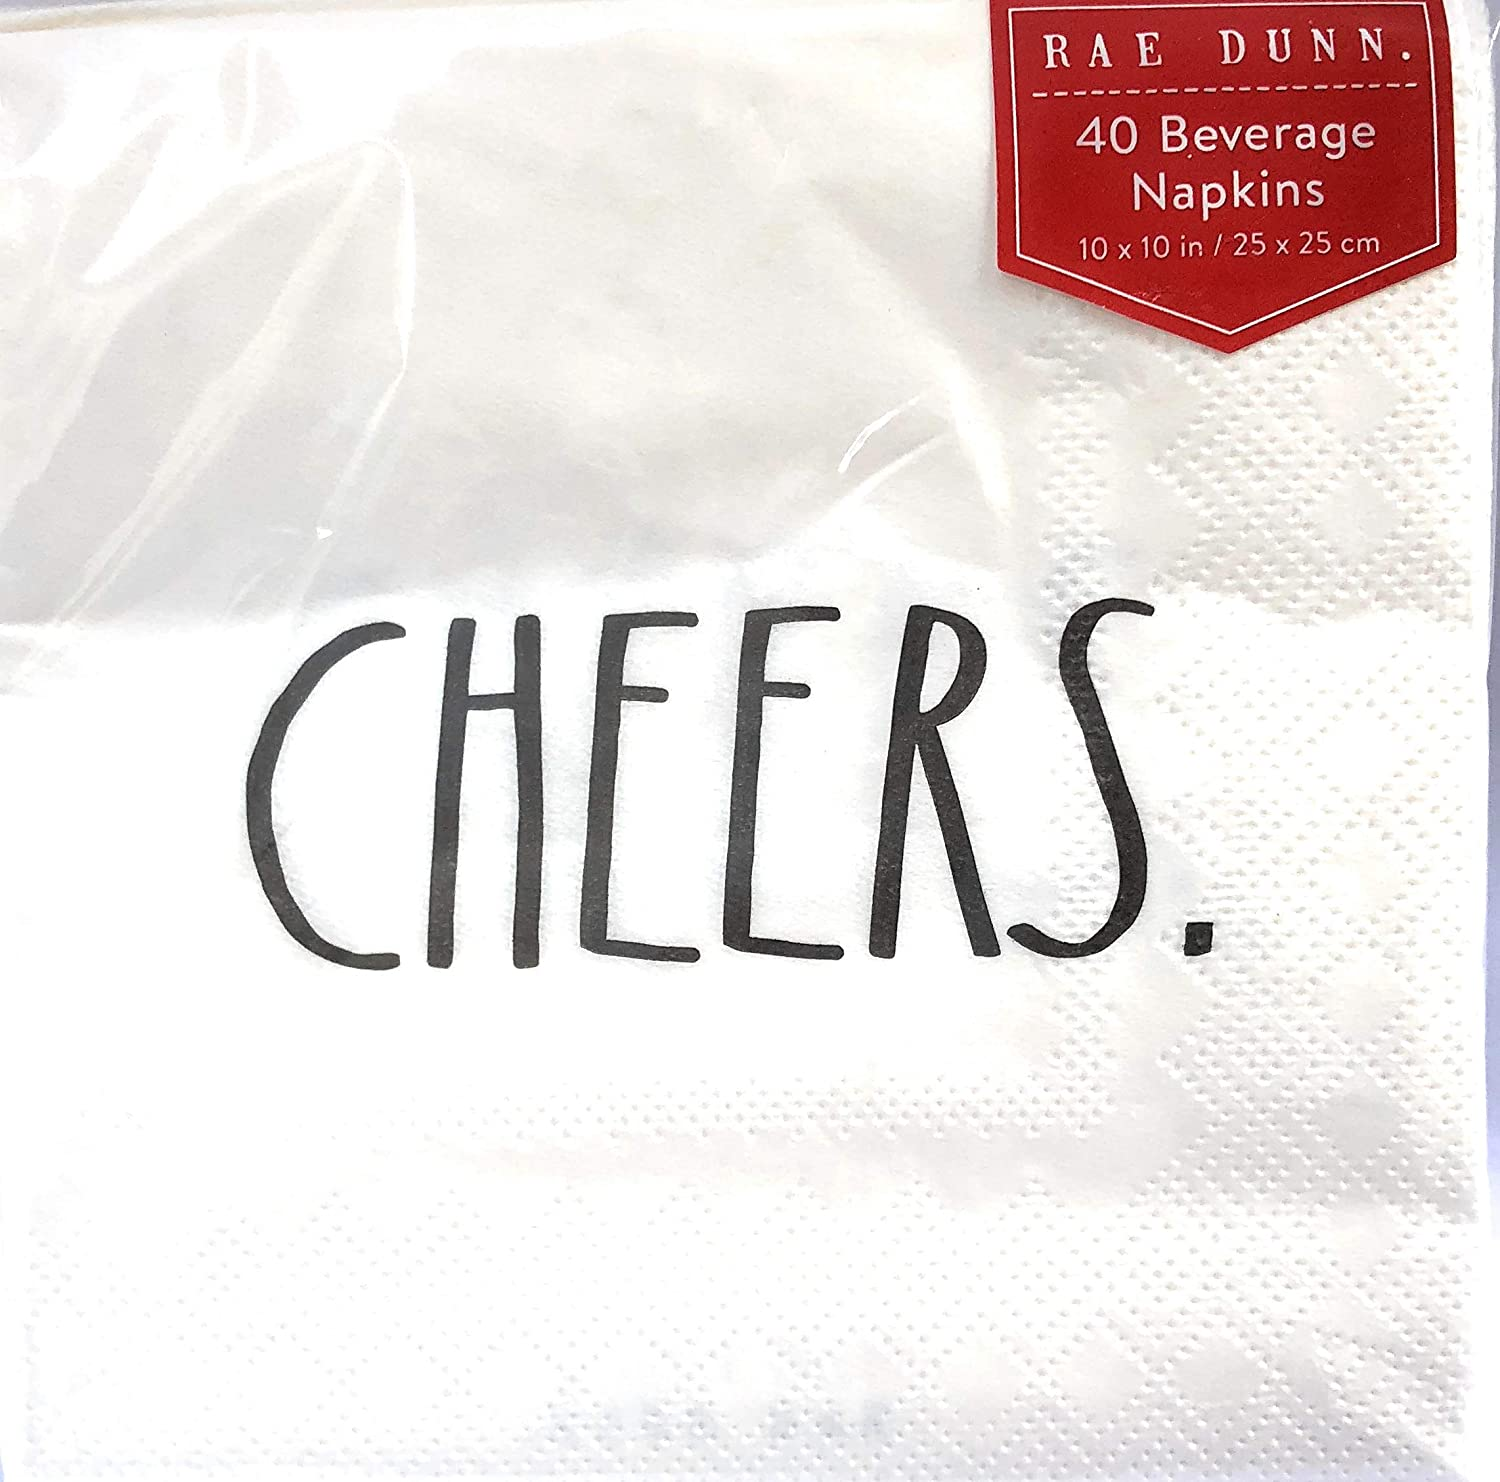 Rae Dunn Cheers Beverage Napkins